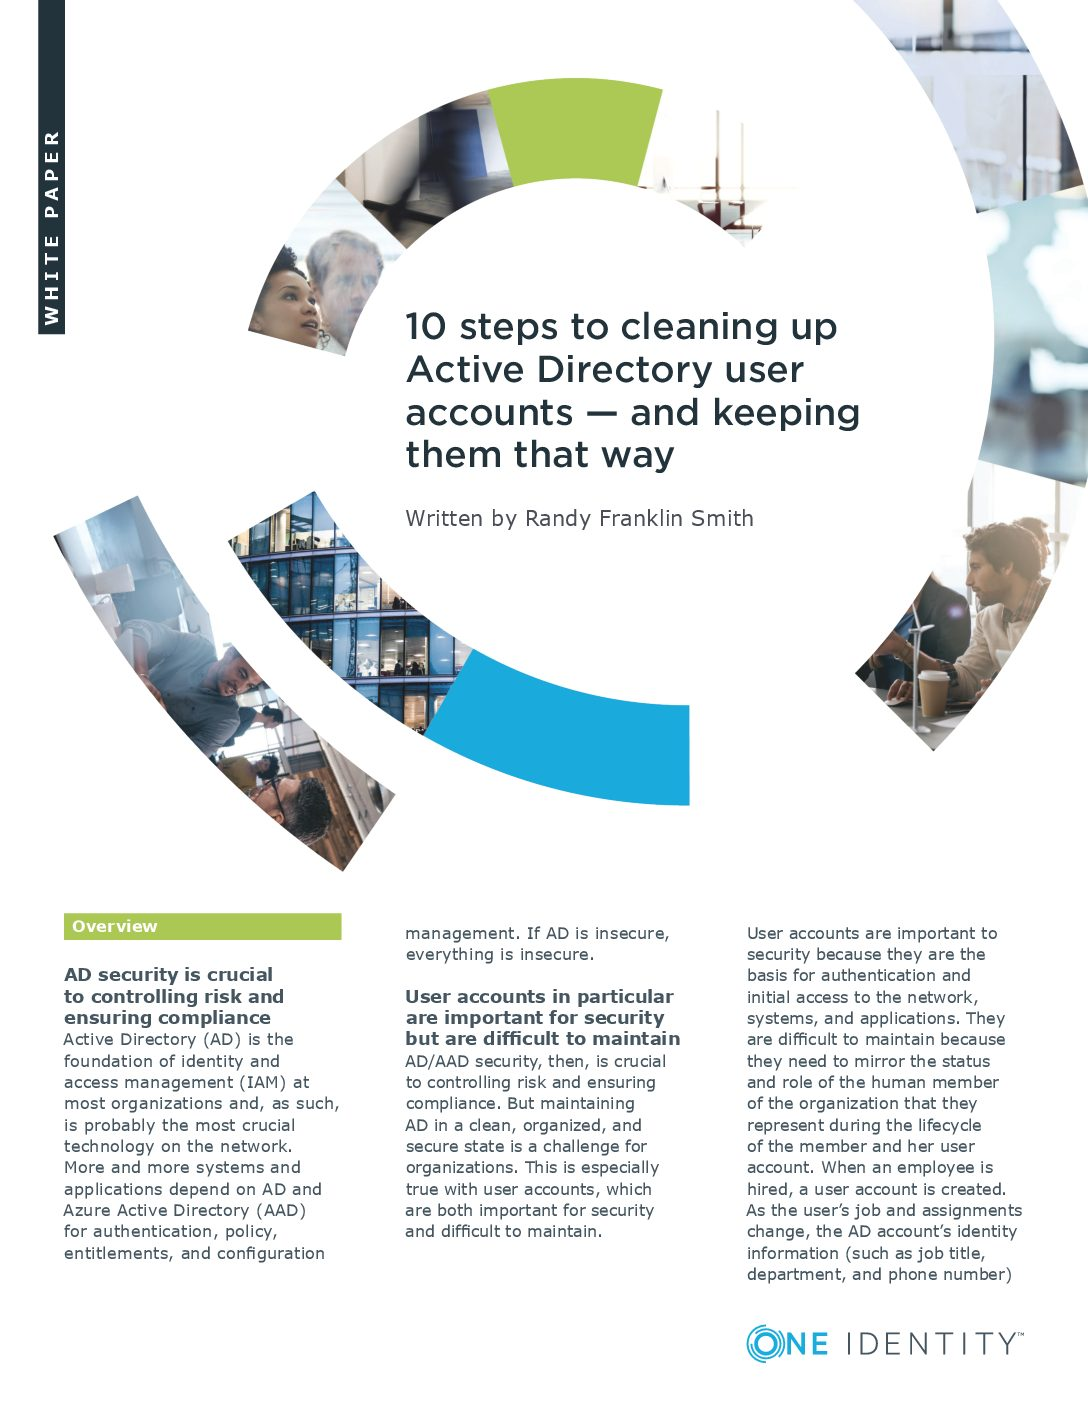 10 Steps to Cleaning up Active Directory User Accounts and Keeping Them that Way